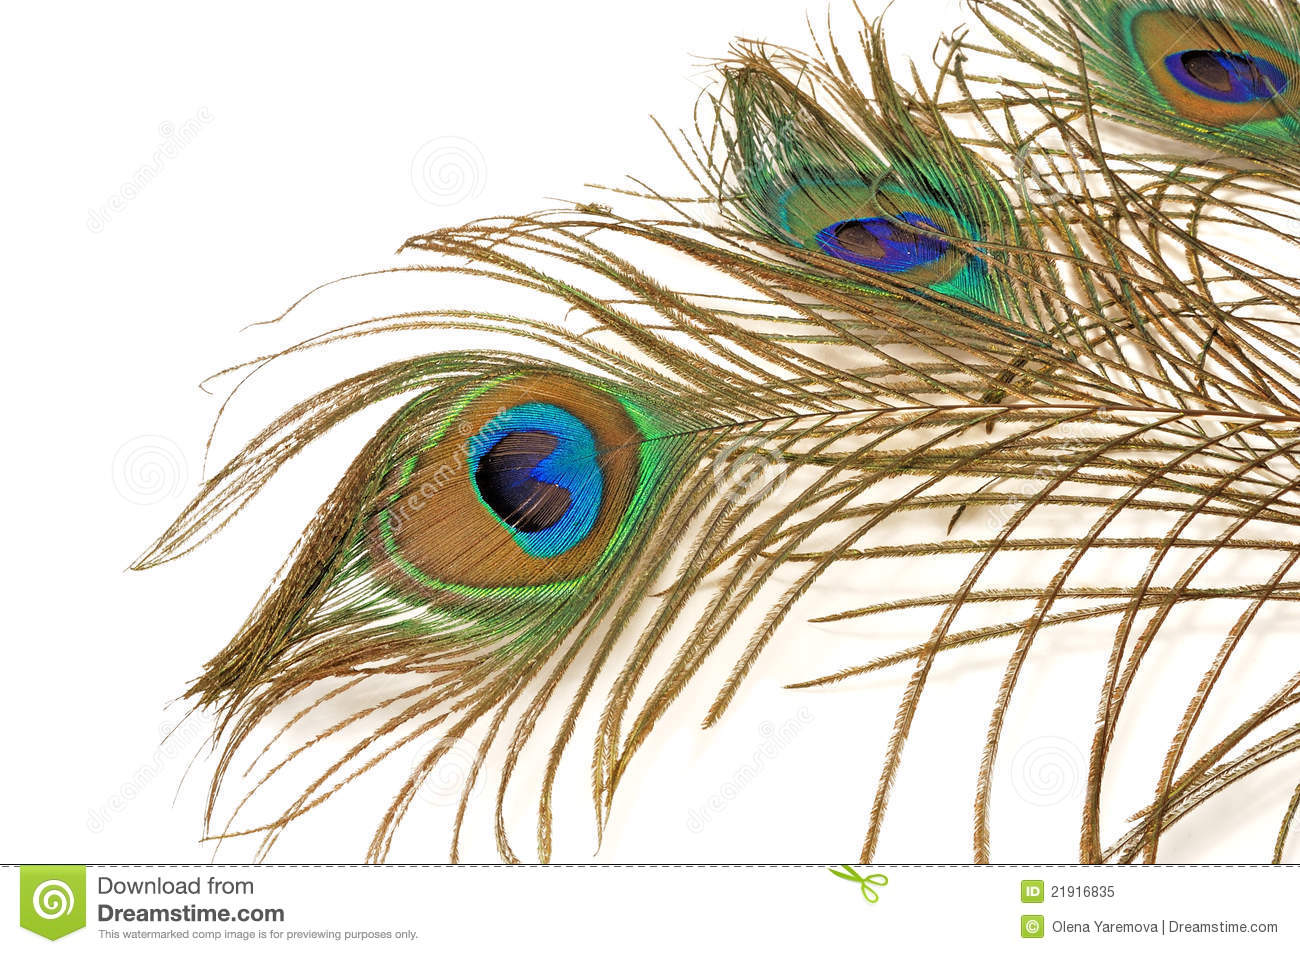 Three beautiful peacock feather royalty free stock photo image 21916835 - Beautiful peacock feather ...